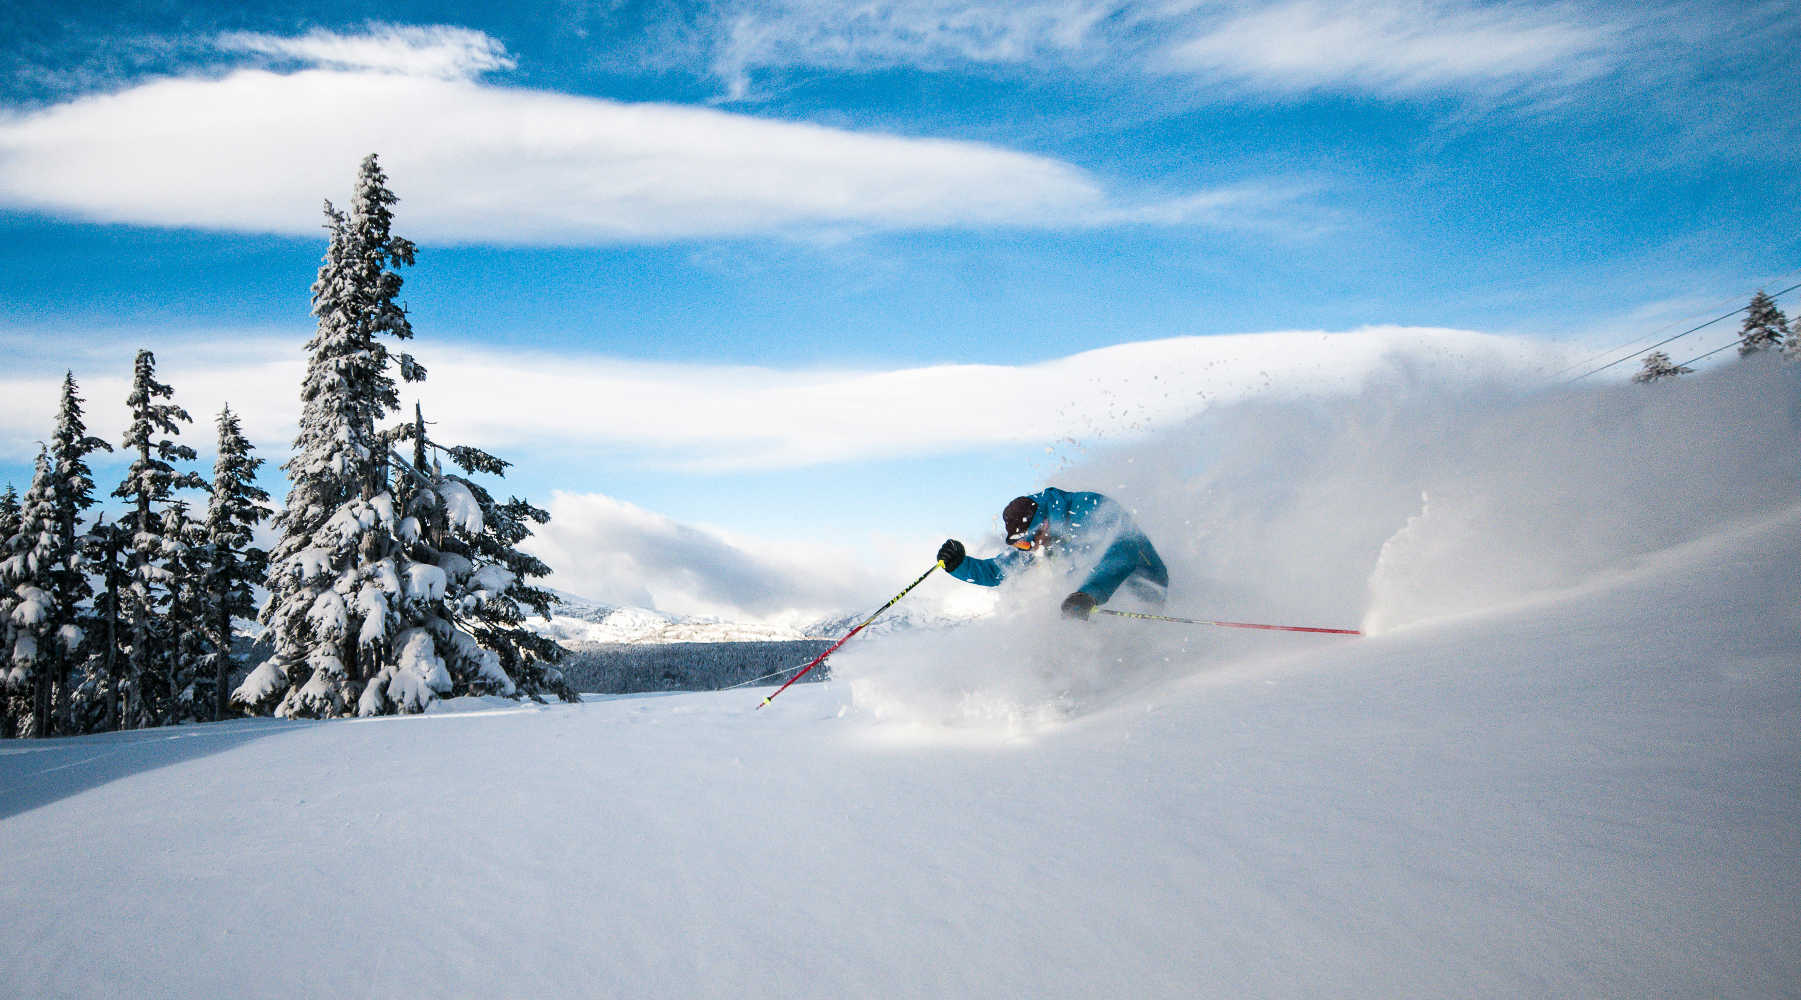 Deep powder skiing camps in Japan